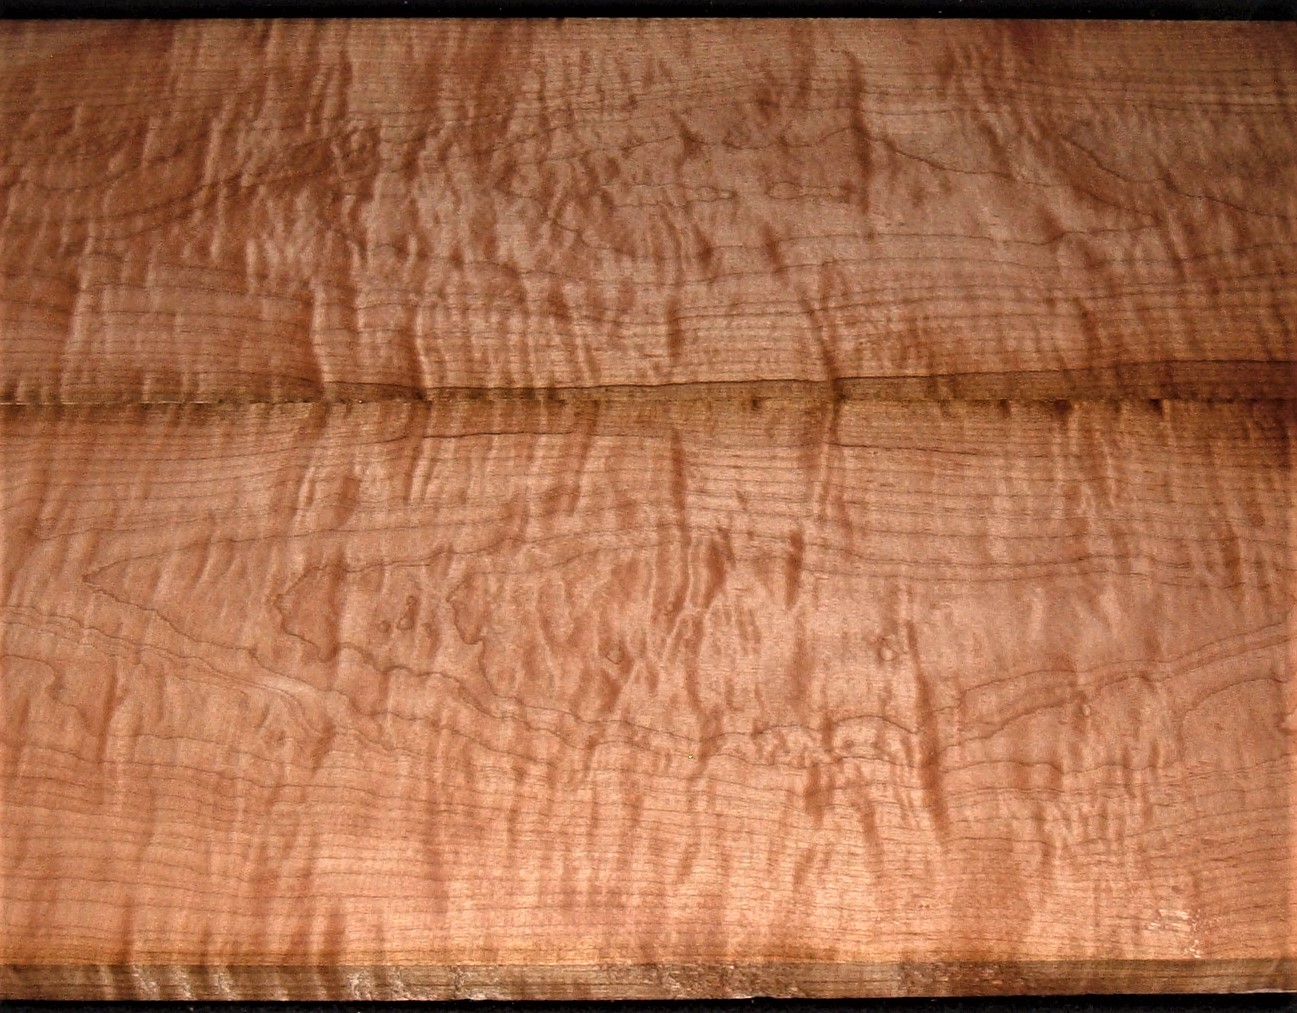 RBM2012-1JJ, 3/4x9-3/8x23, 3/4x9-3/8x23, Curly Tiger Maple, Roasted Book Match